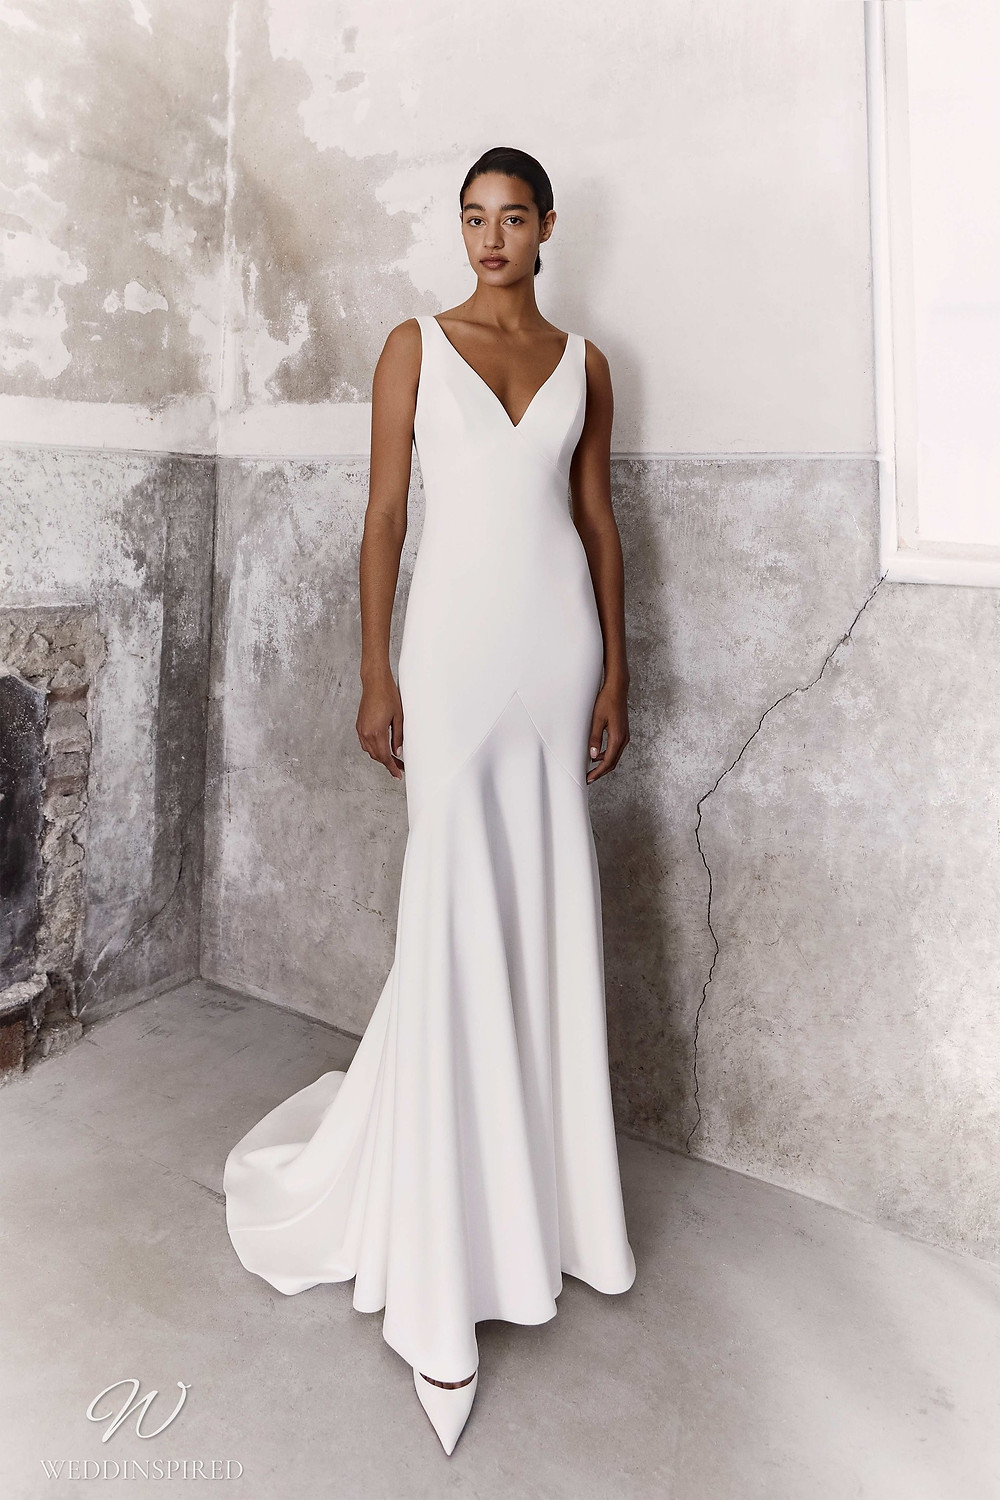 A Viktor & Rolf Fall/Winter 2021 simple mermaid wedding dress with straps and a v neckline